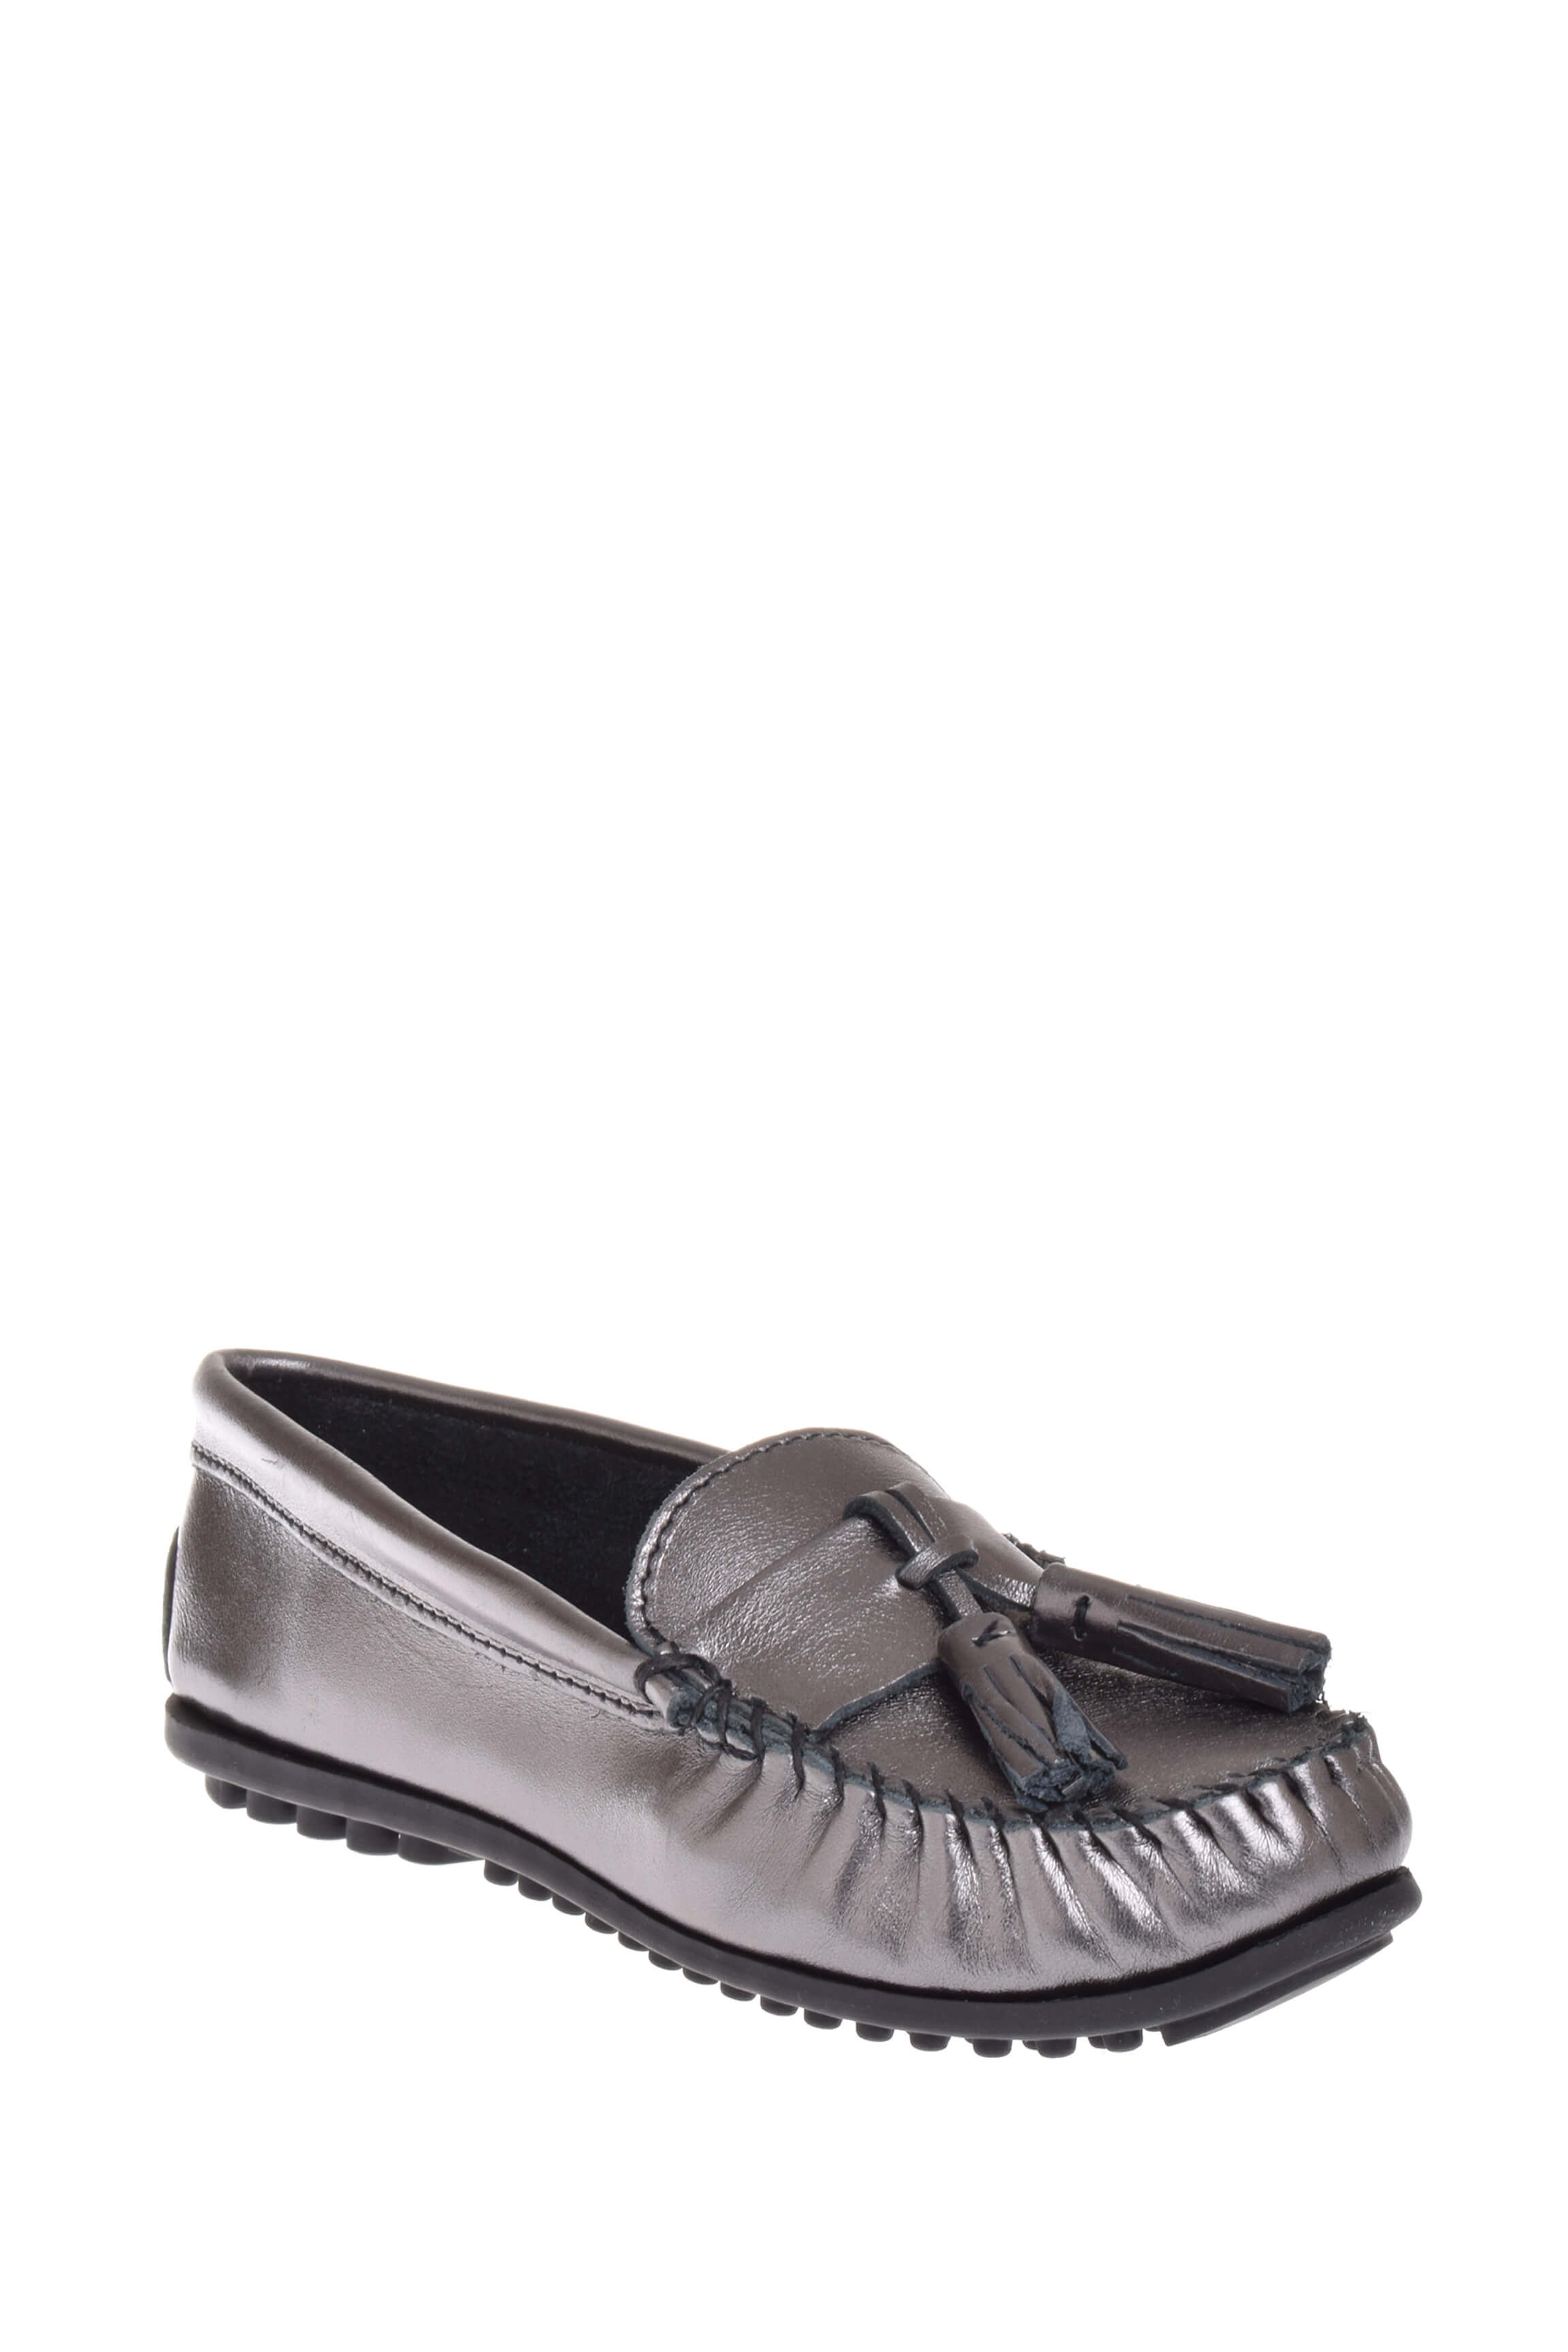 Minnetonka 419T Grace Moc Loafer Gunmetal by